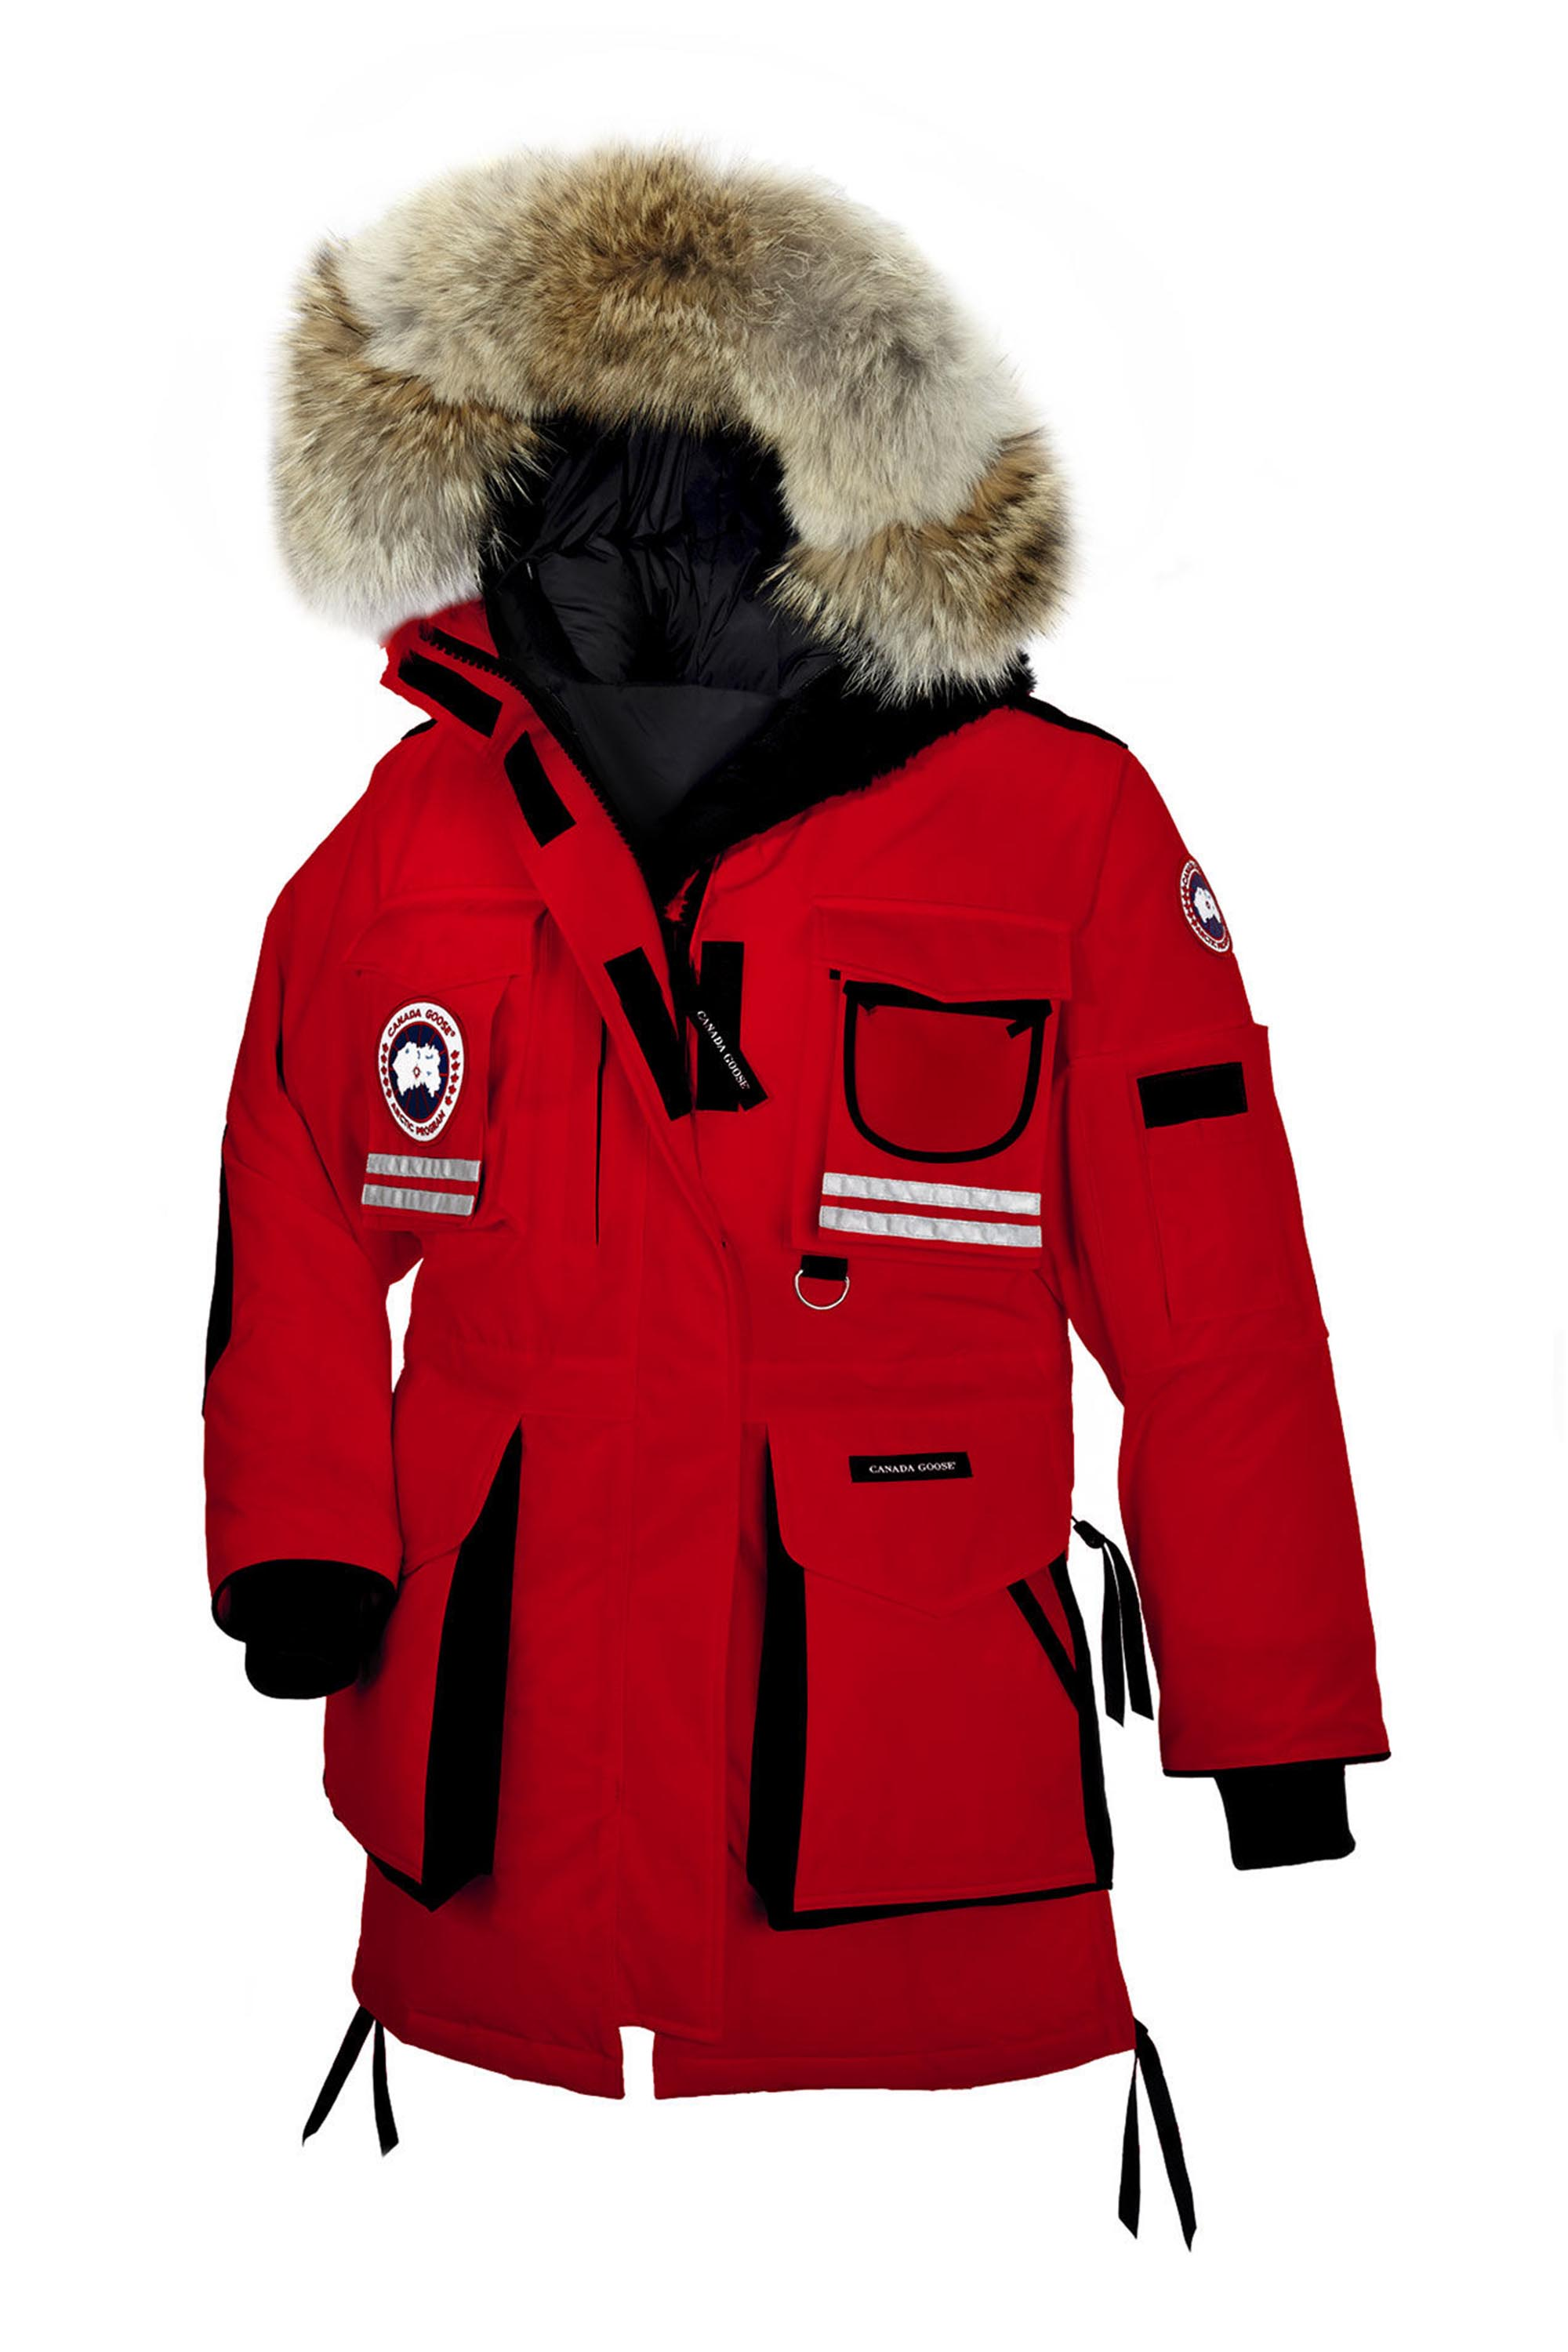 Our Editors' Choice award winner, the Canada Goose Kensington Parka, is the epitome of a classic winter jacket. Oozing with style from head to toe, this knee-length contender is a show stopper. From the smooth, sleek, water-resistant outer shell to the adjustable cinched-waist, no detail has been left out.